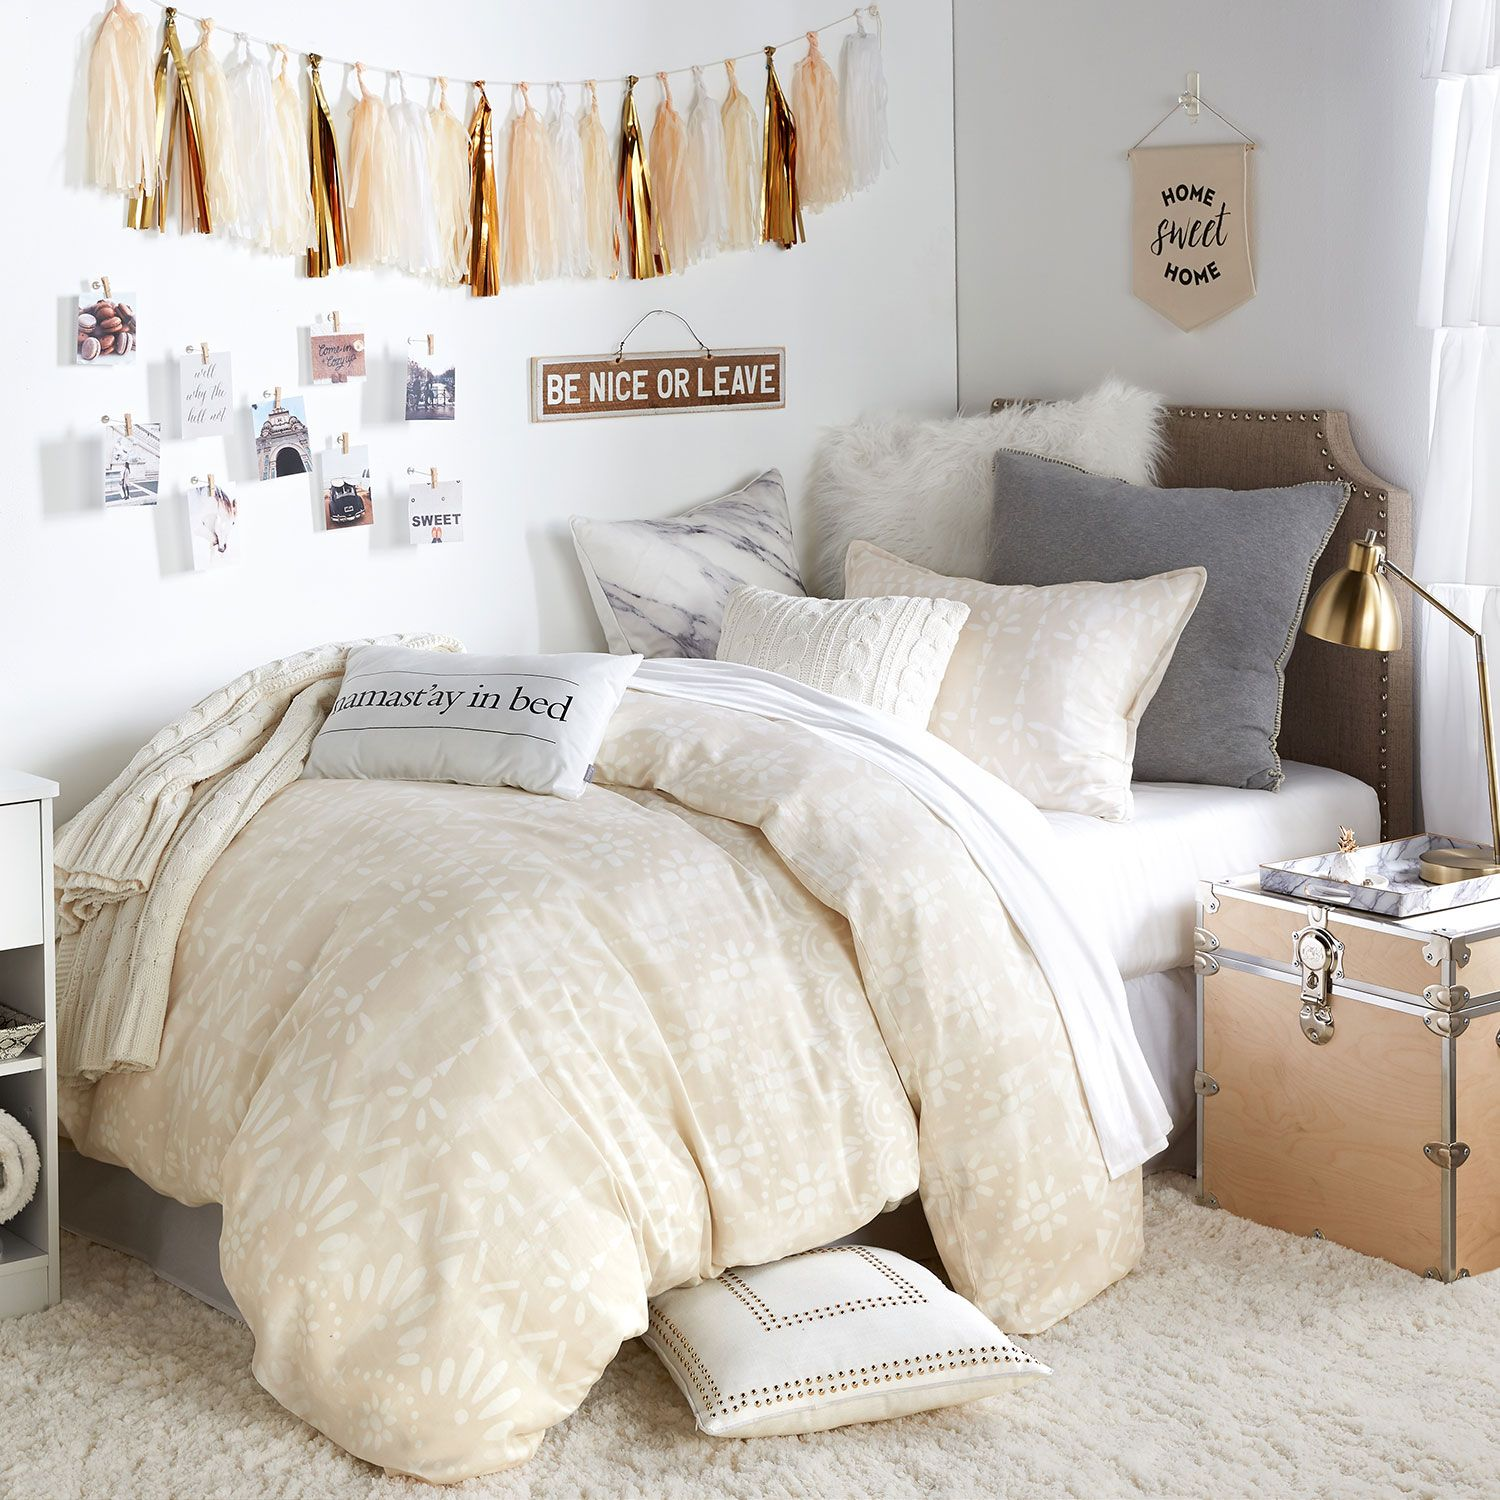 Dormify Take It Easy Room // shop dormify.com to get this look ...